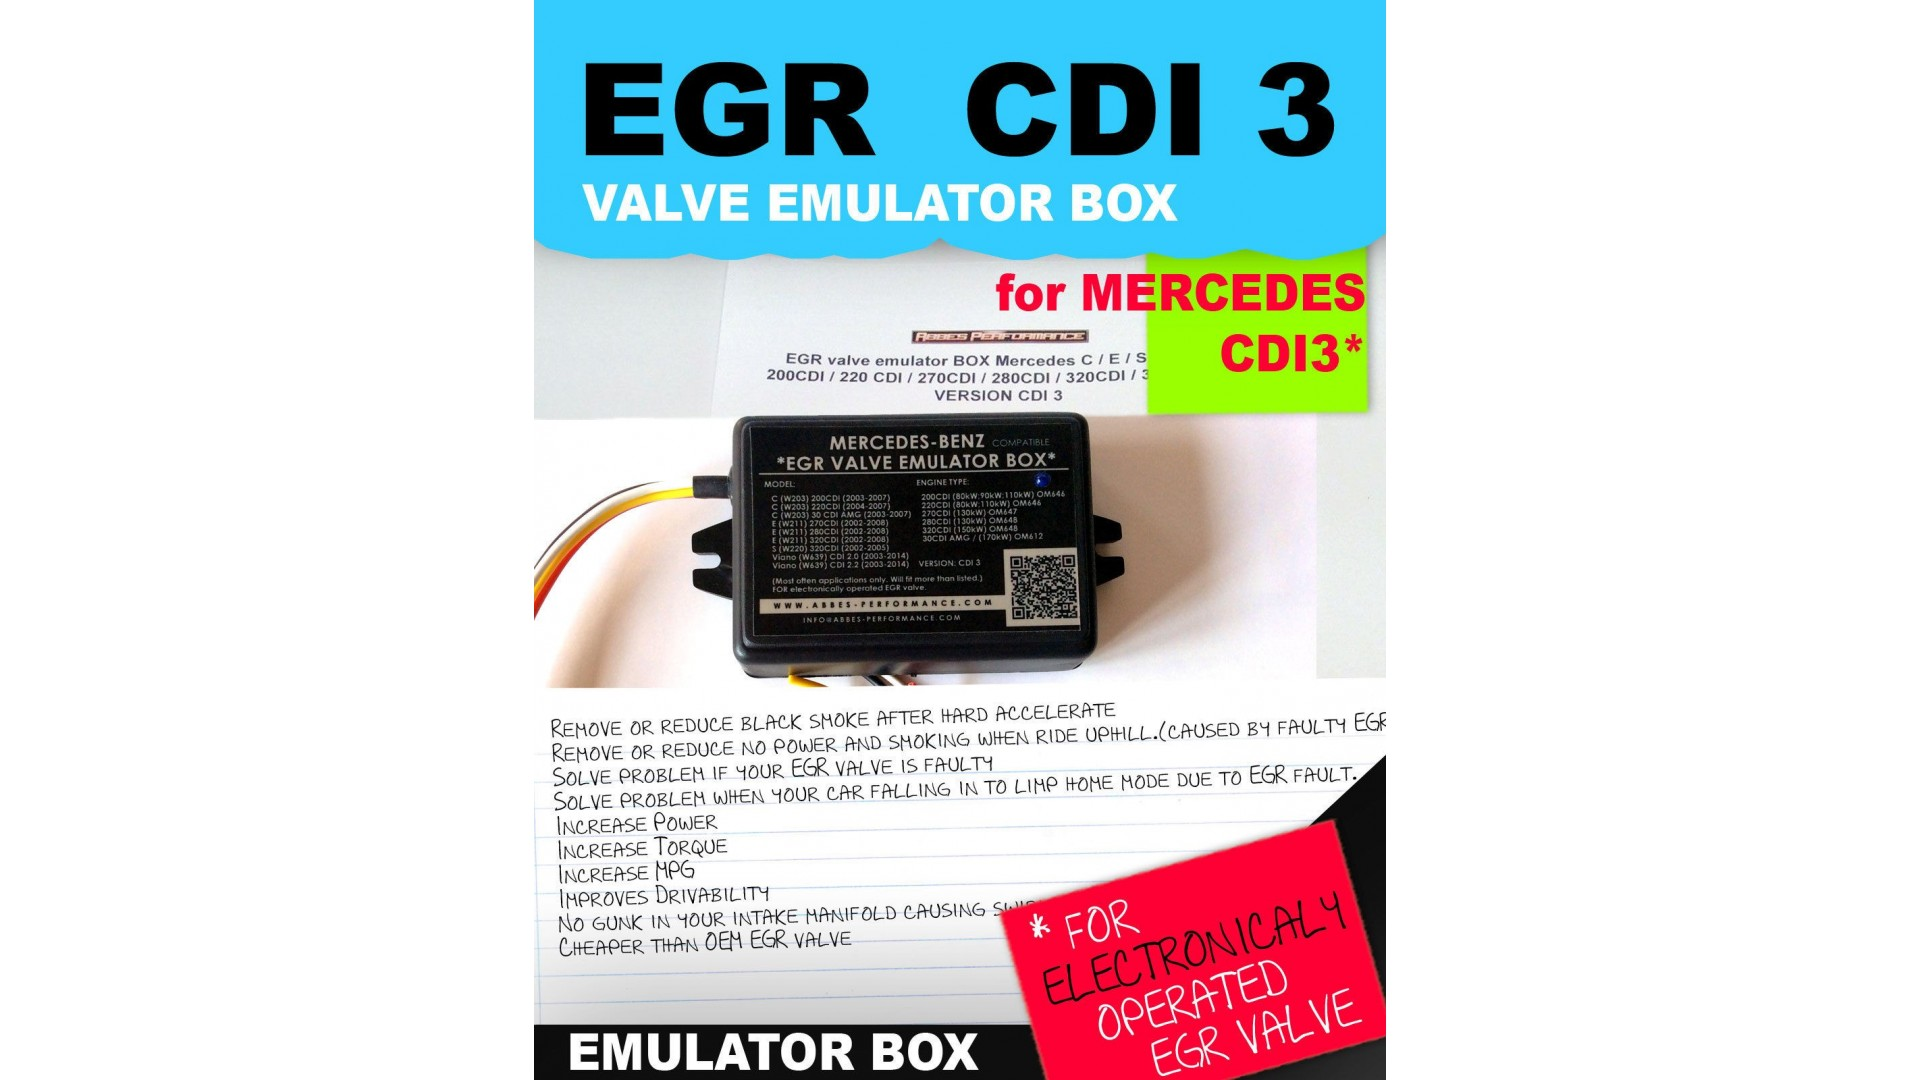 EGR valve emulator BOX Mercedes C / E / S / ML / 220 CDI / 270CDI